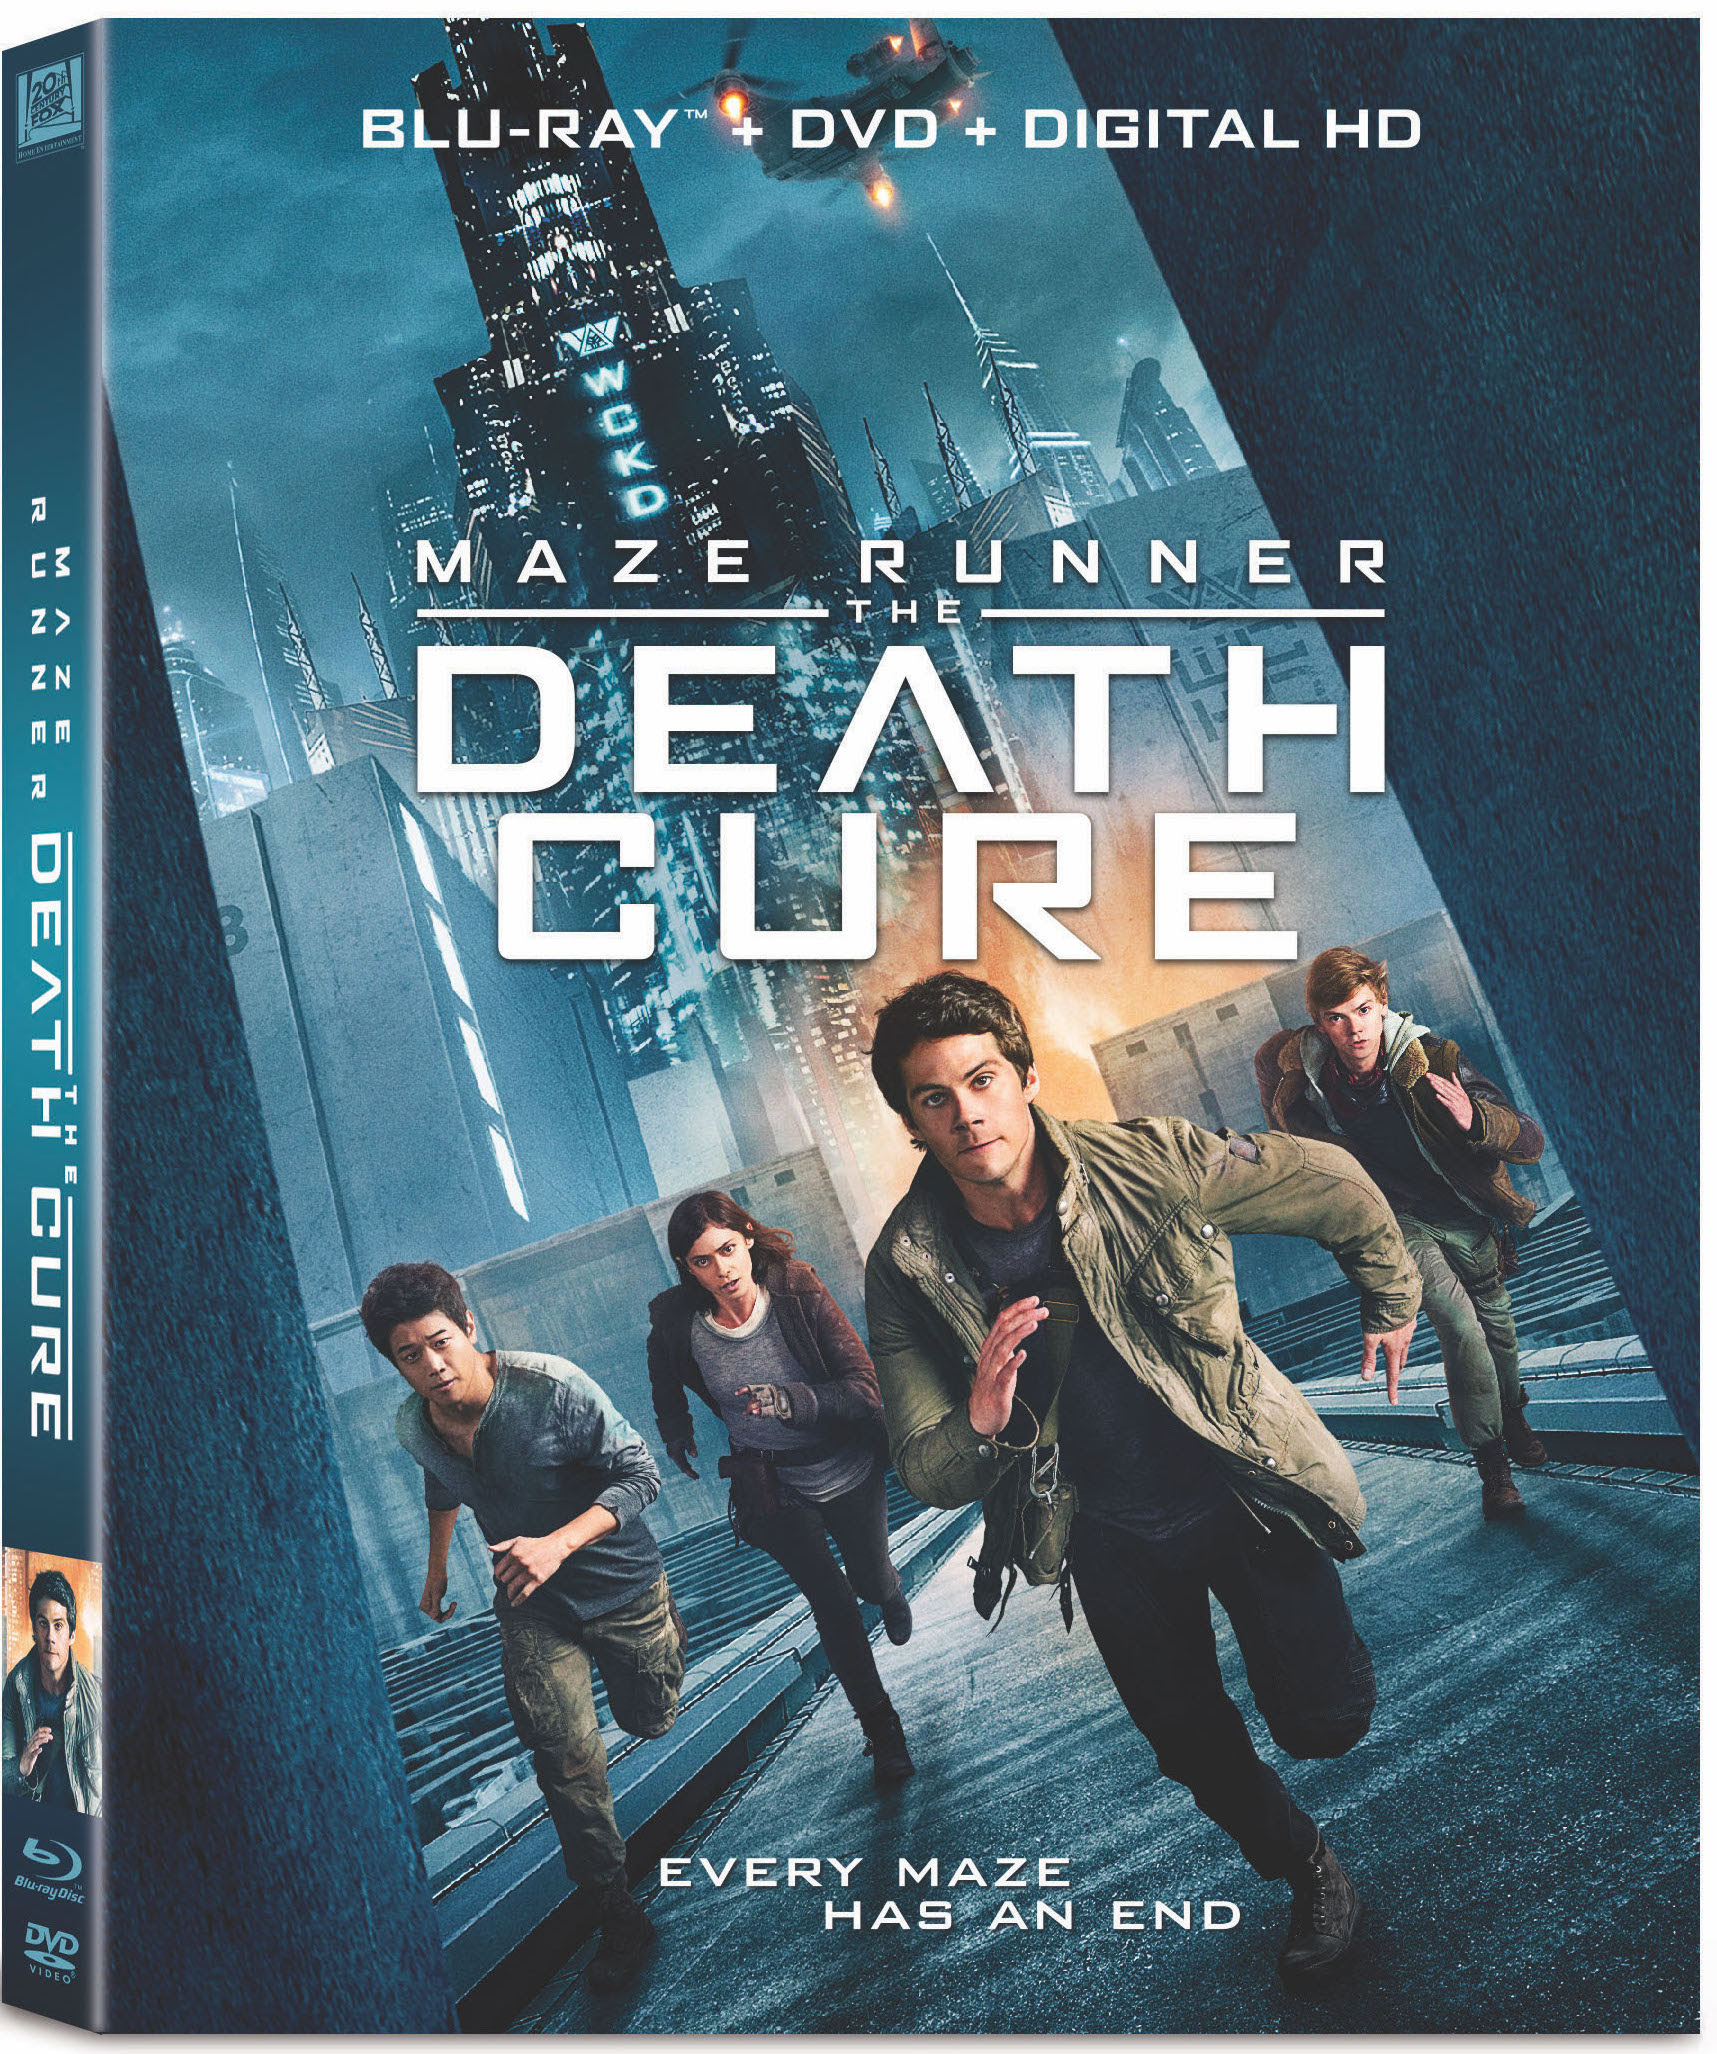 The Maze Runner: Death Cure 2018 47